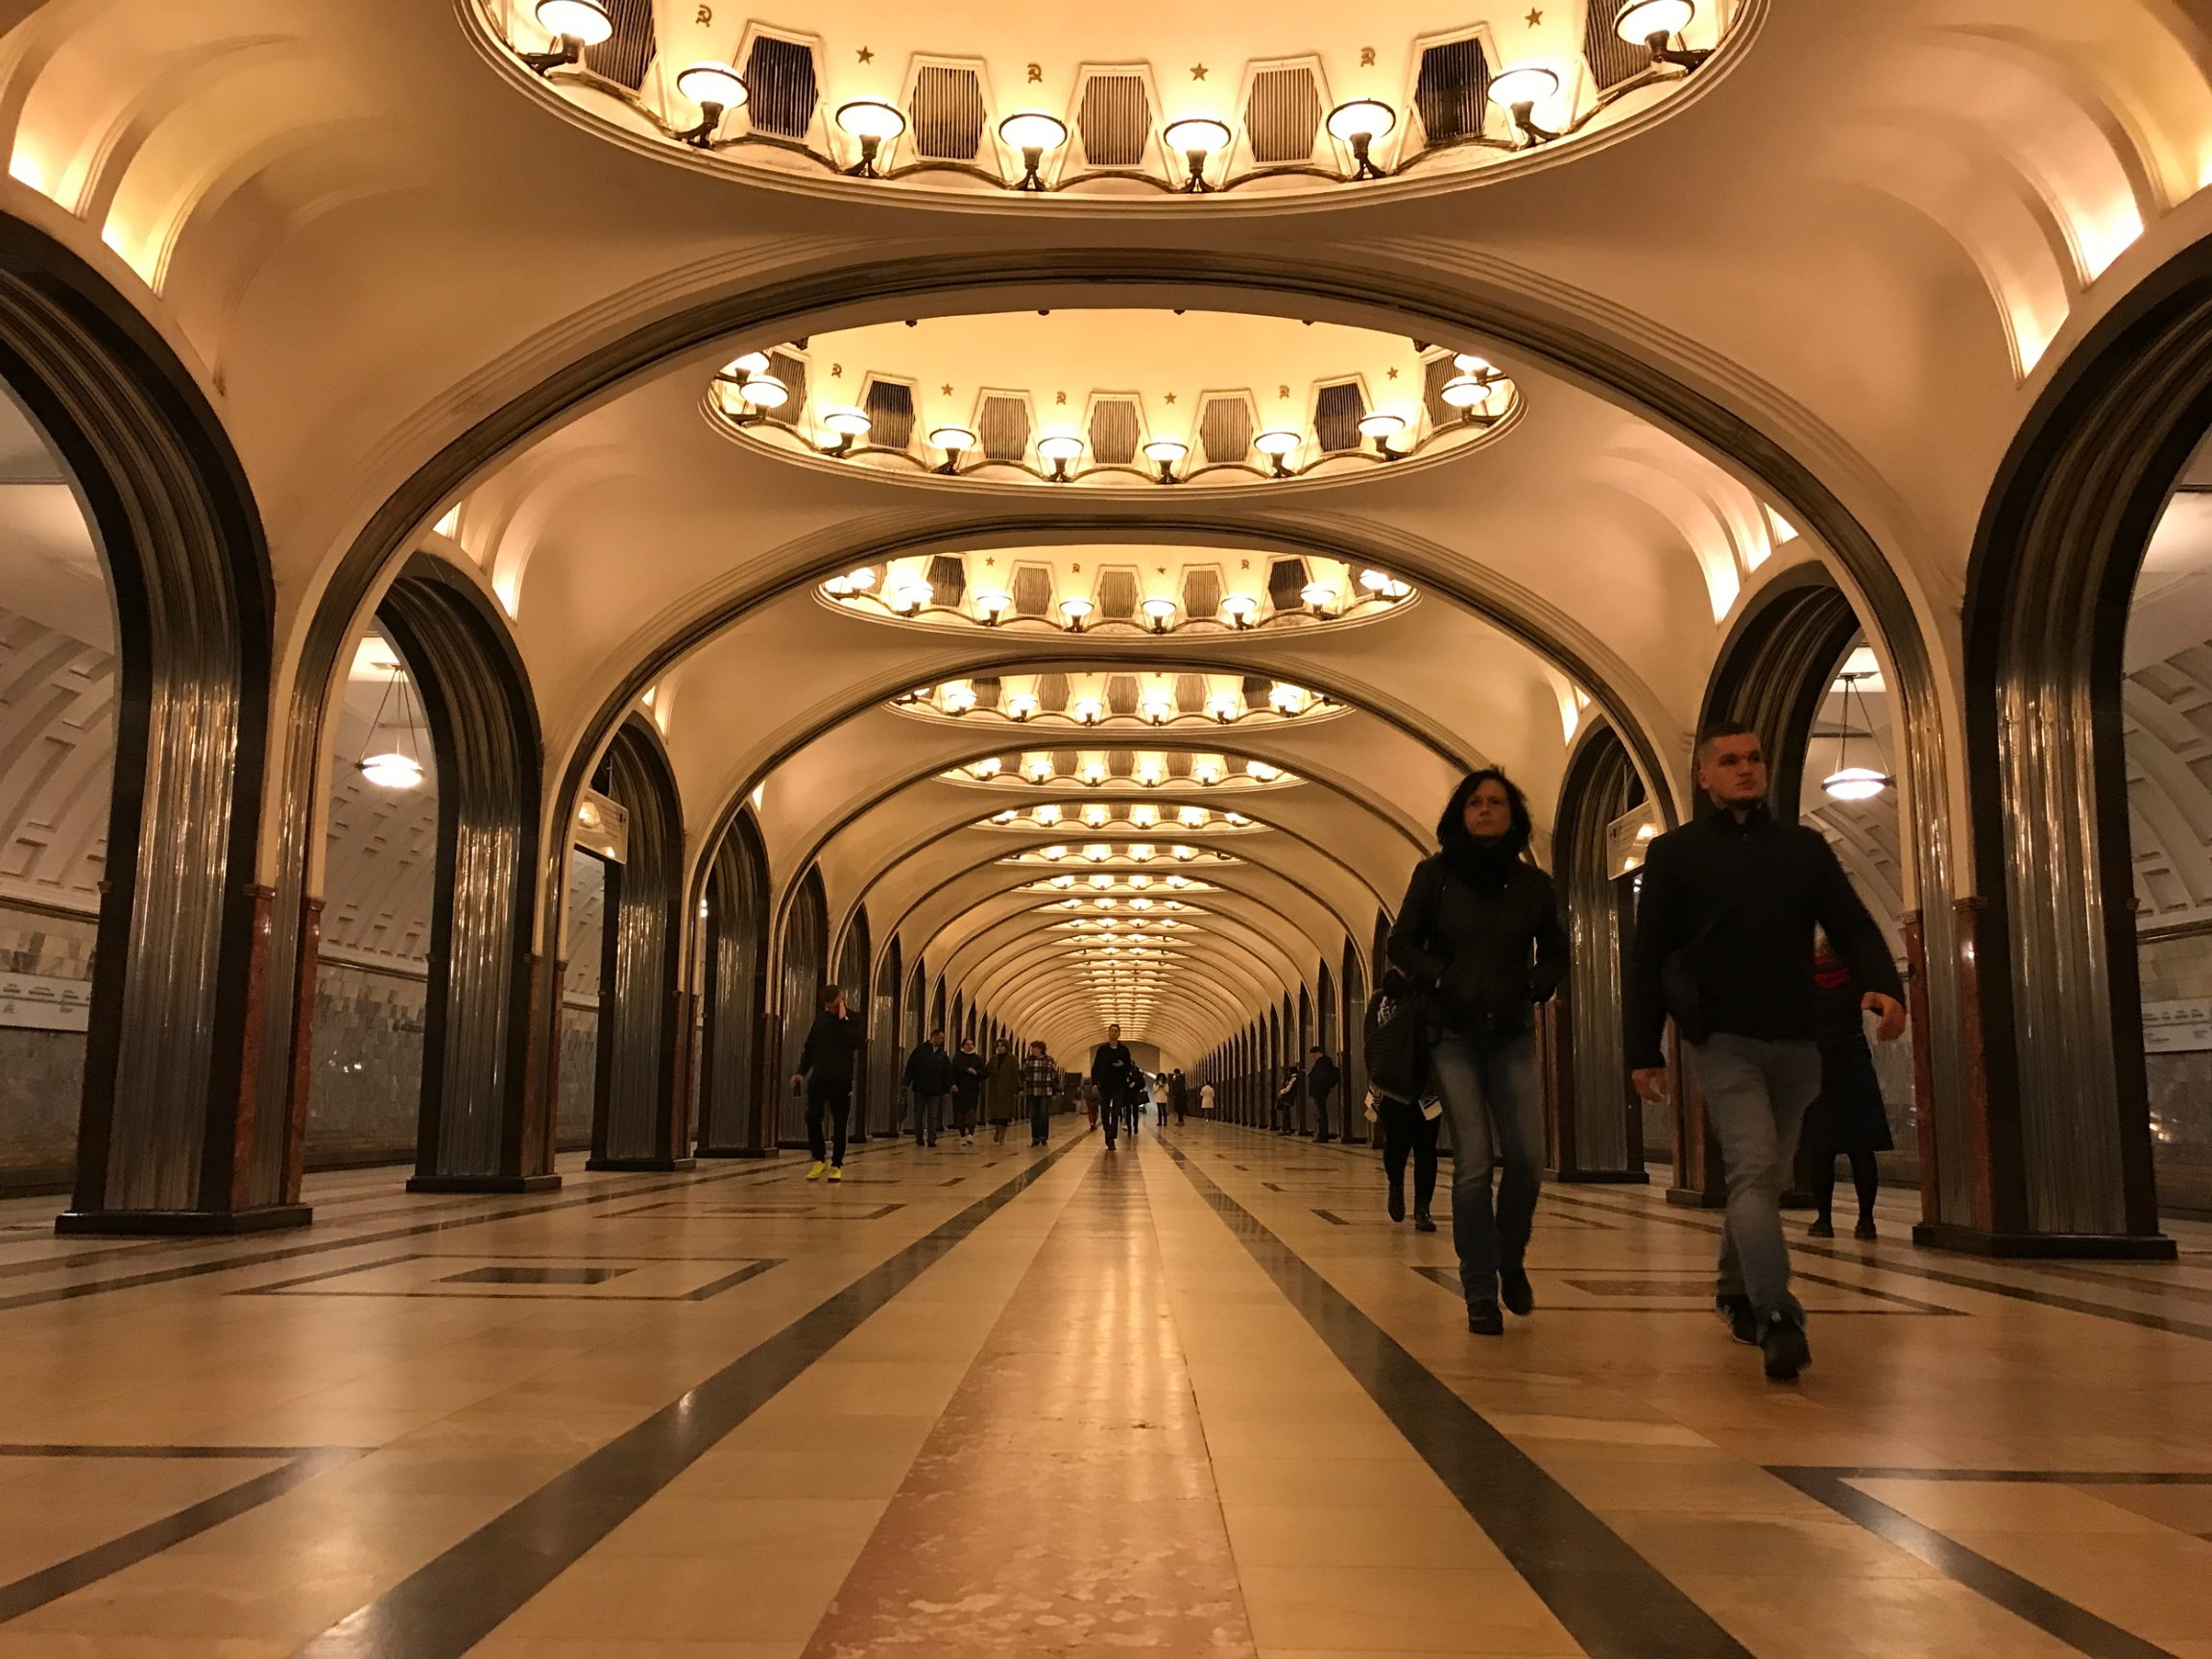 People walk through a gleaming train station